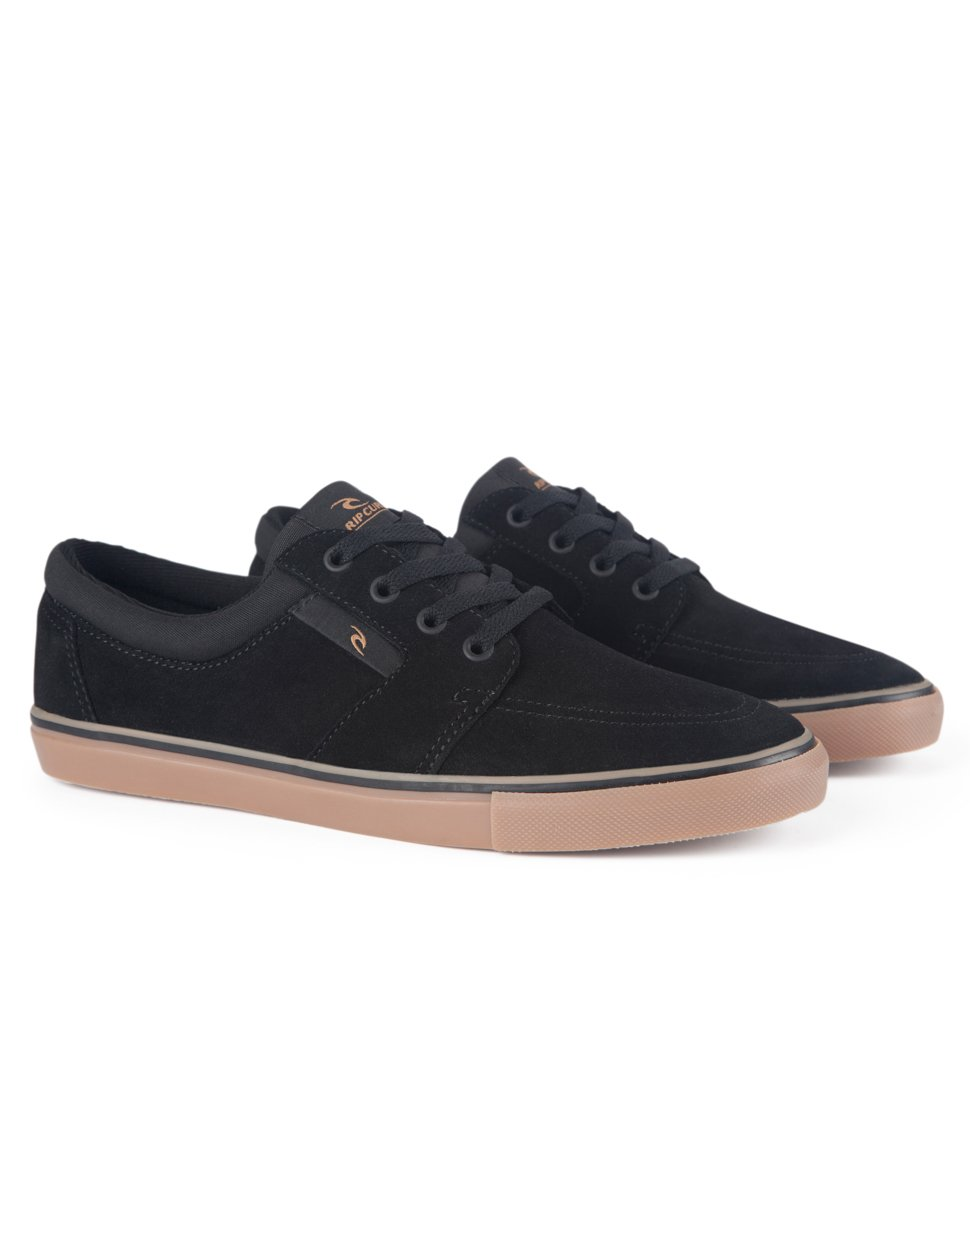 Rip Curl Transit Vulc Leather Shoe Black